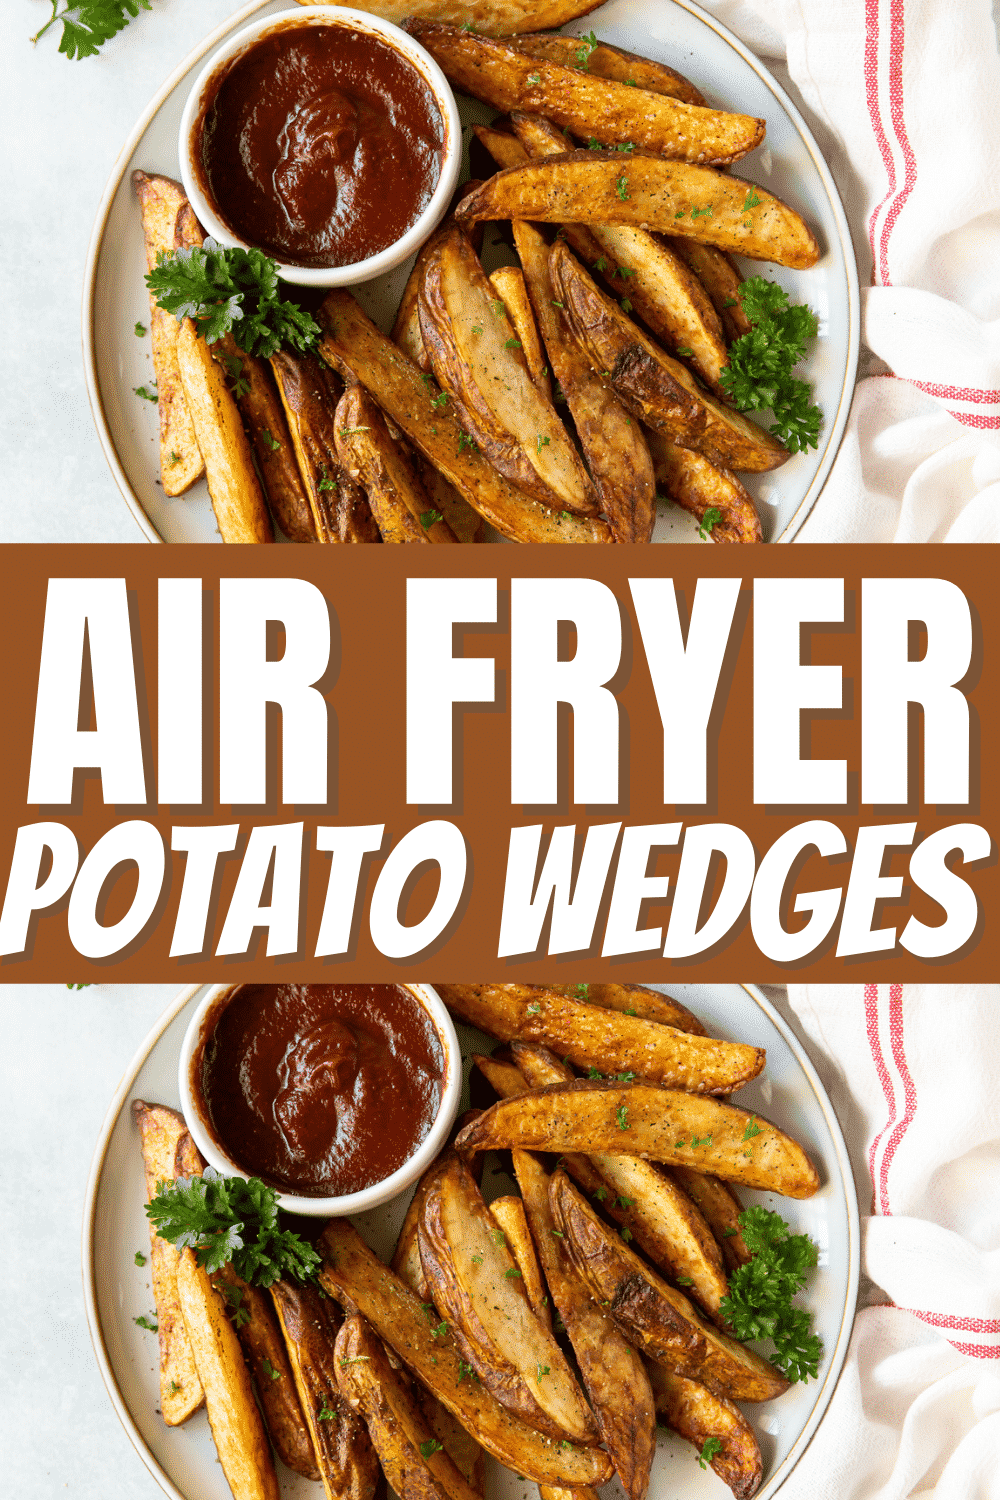 Air Fryer potato wedges are perfectly seasoned, rustic french fries that cook up beautifully crispy in your air fryer. Serve these as a side dish with your favorite dinners, you'll keep coming back to this recipe again and again. #frenchfries #airfryer via @vegetarianmamma